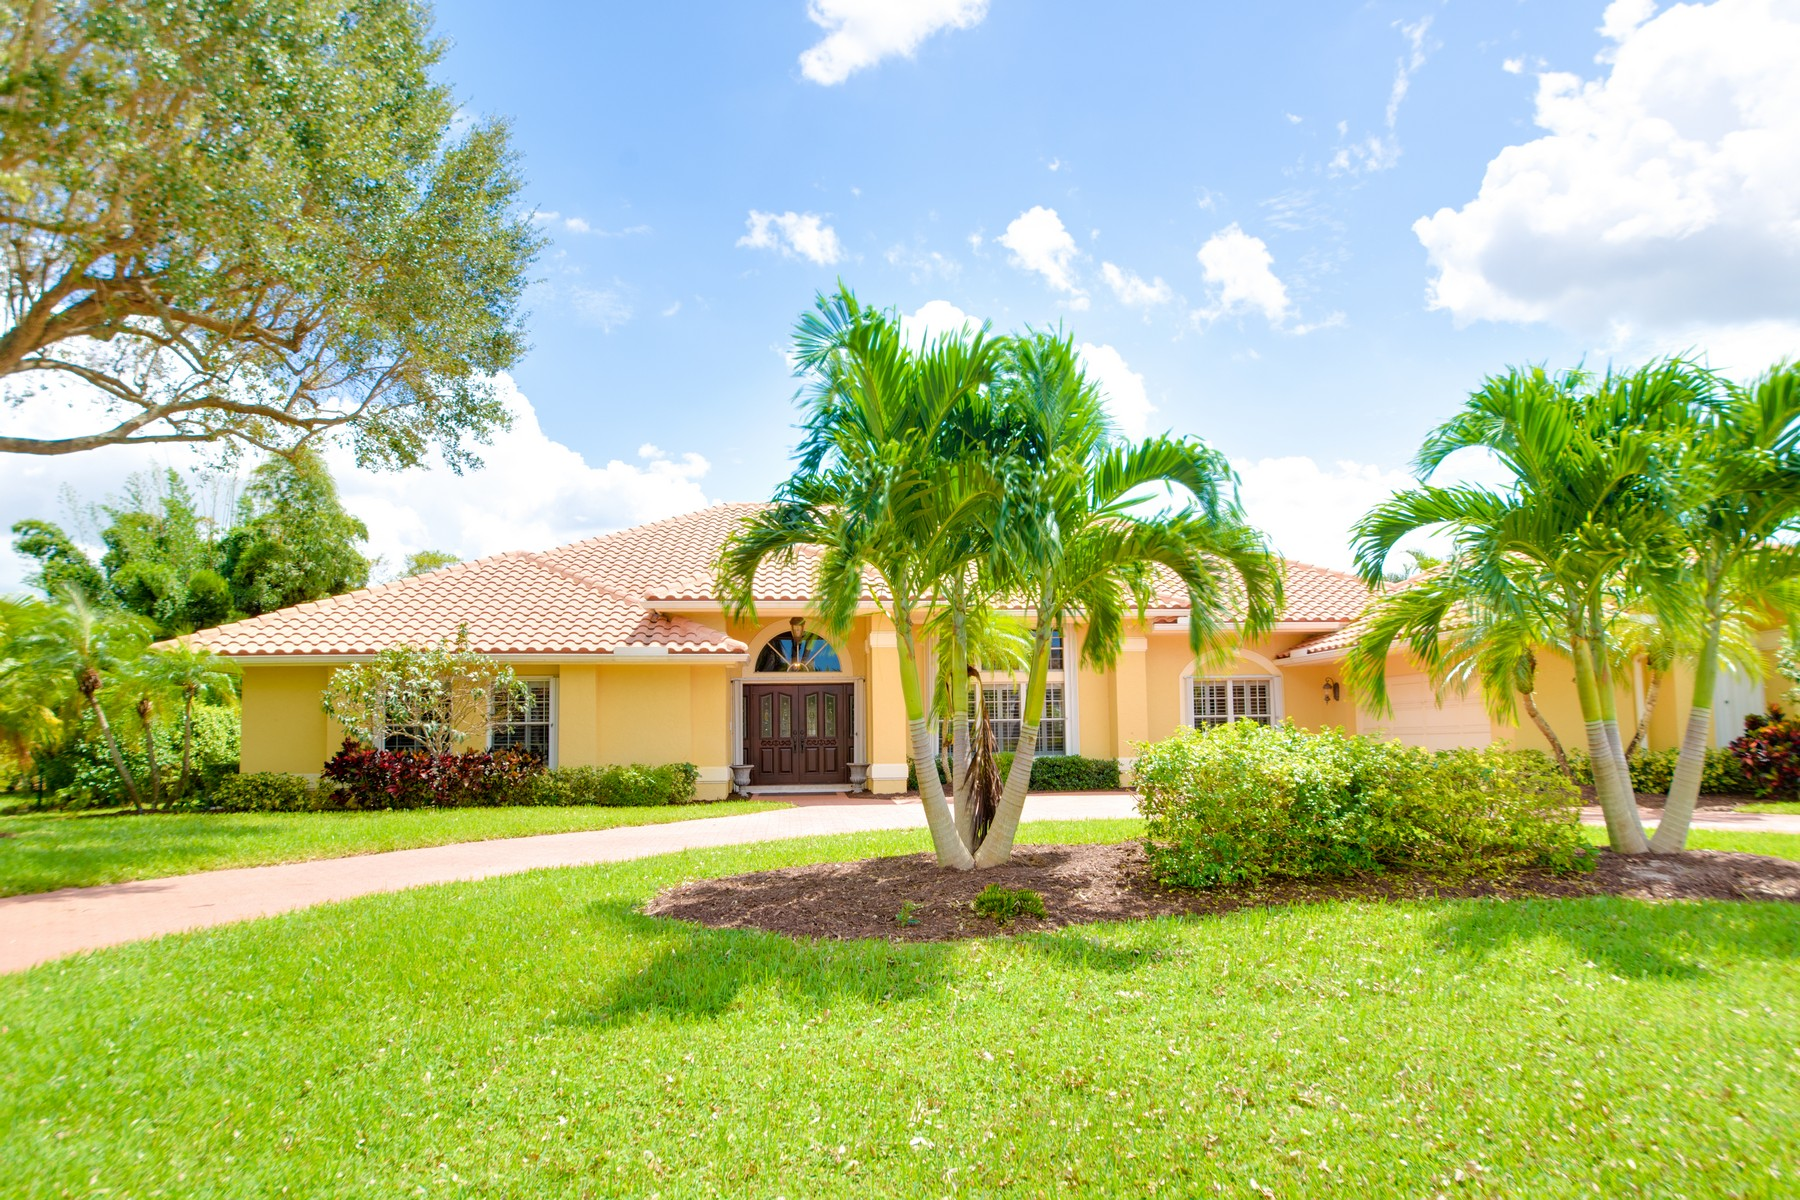 Single Family Home for Rent at 2035 Sunderland Ave 2035 Sunderland Ave Wellington, Florida 33414 United States